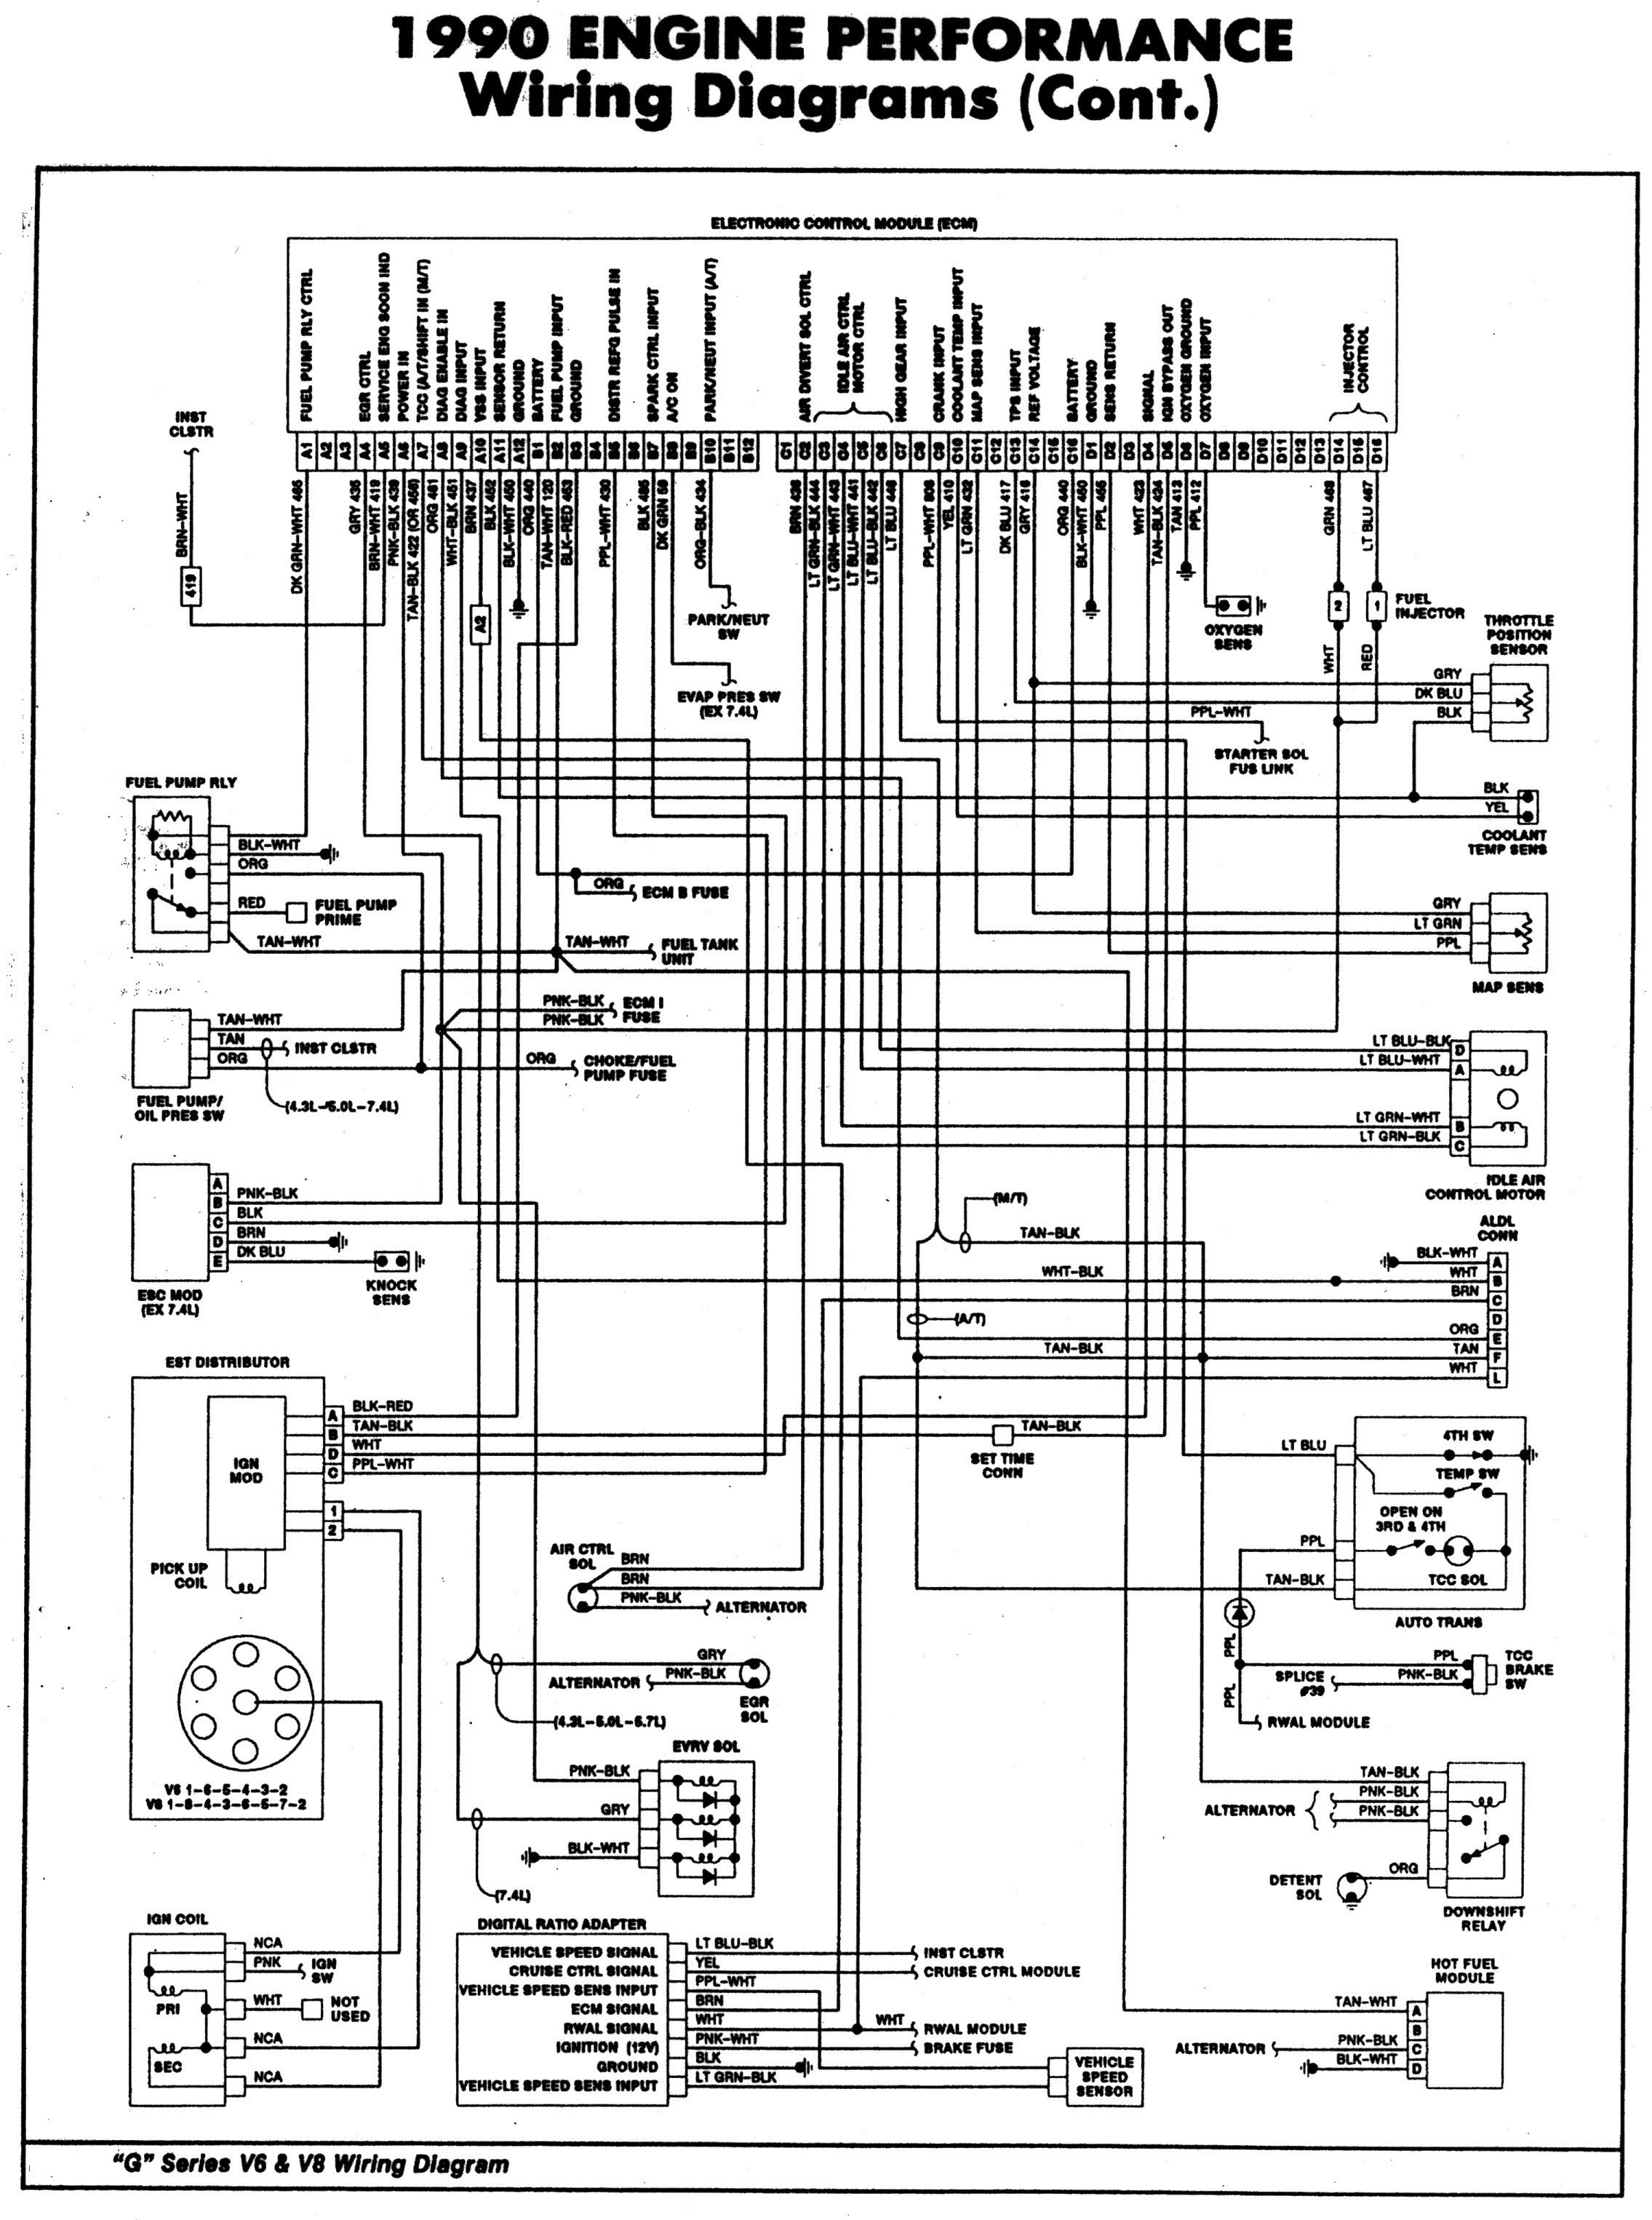 Free Wiring Diagrams Electrical Wiring Diagram Chevy Trucks Chevy Pickups